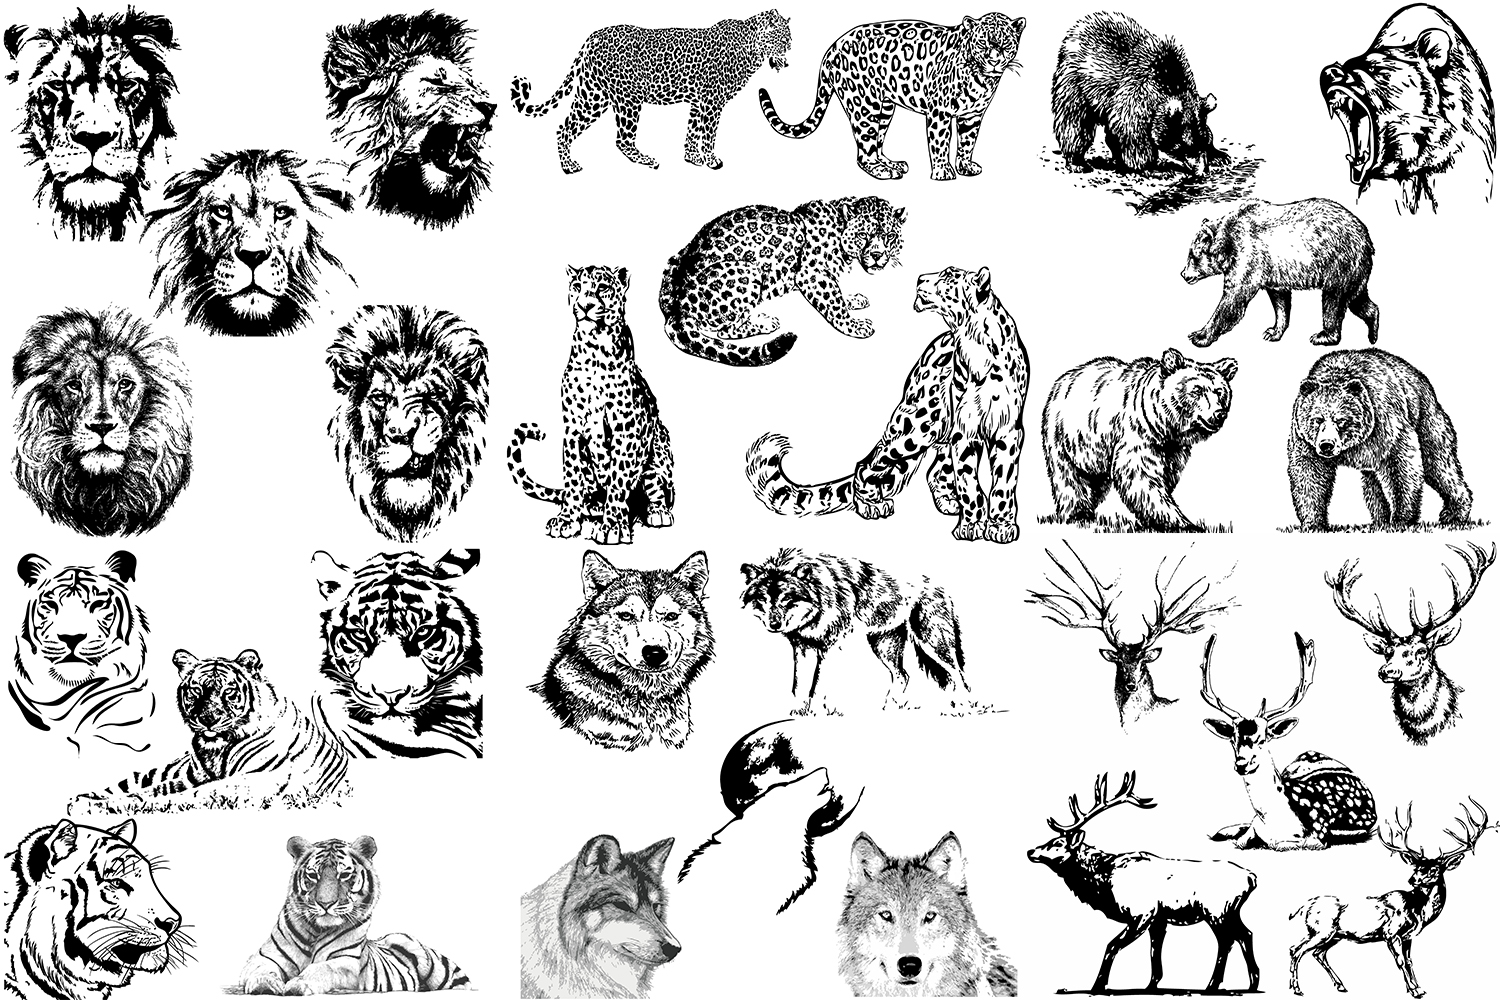 50 wild animals hand drawn silhouette vector illustrations example image 5